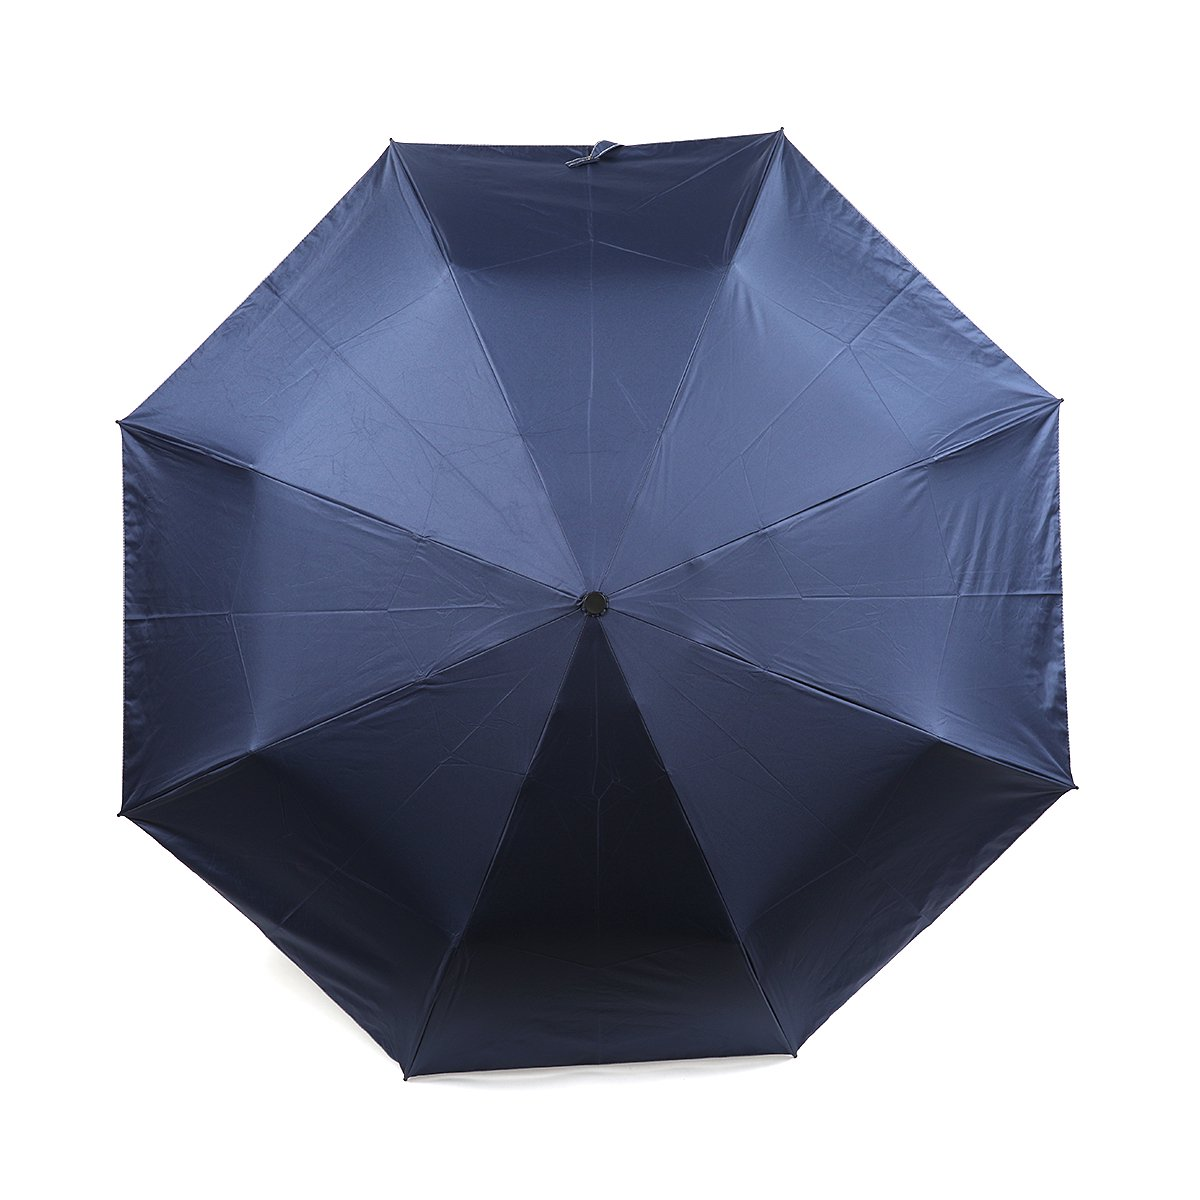 608K UV FOLDING UMBRELLA 詳細画像1